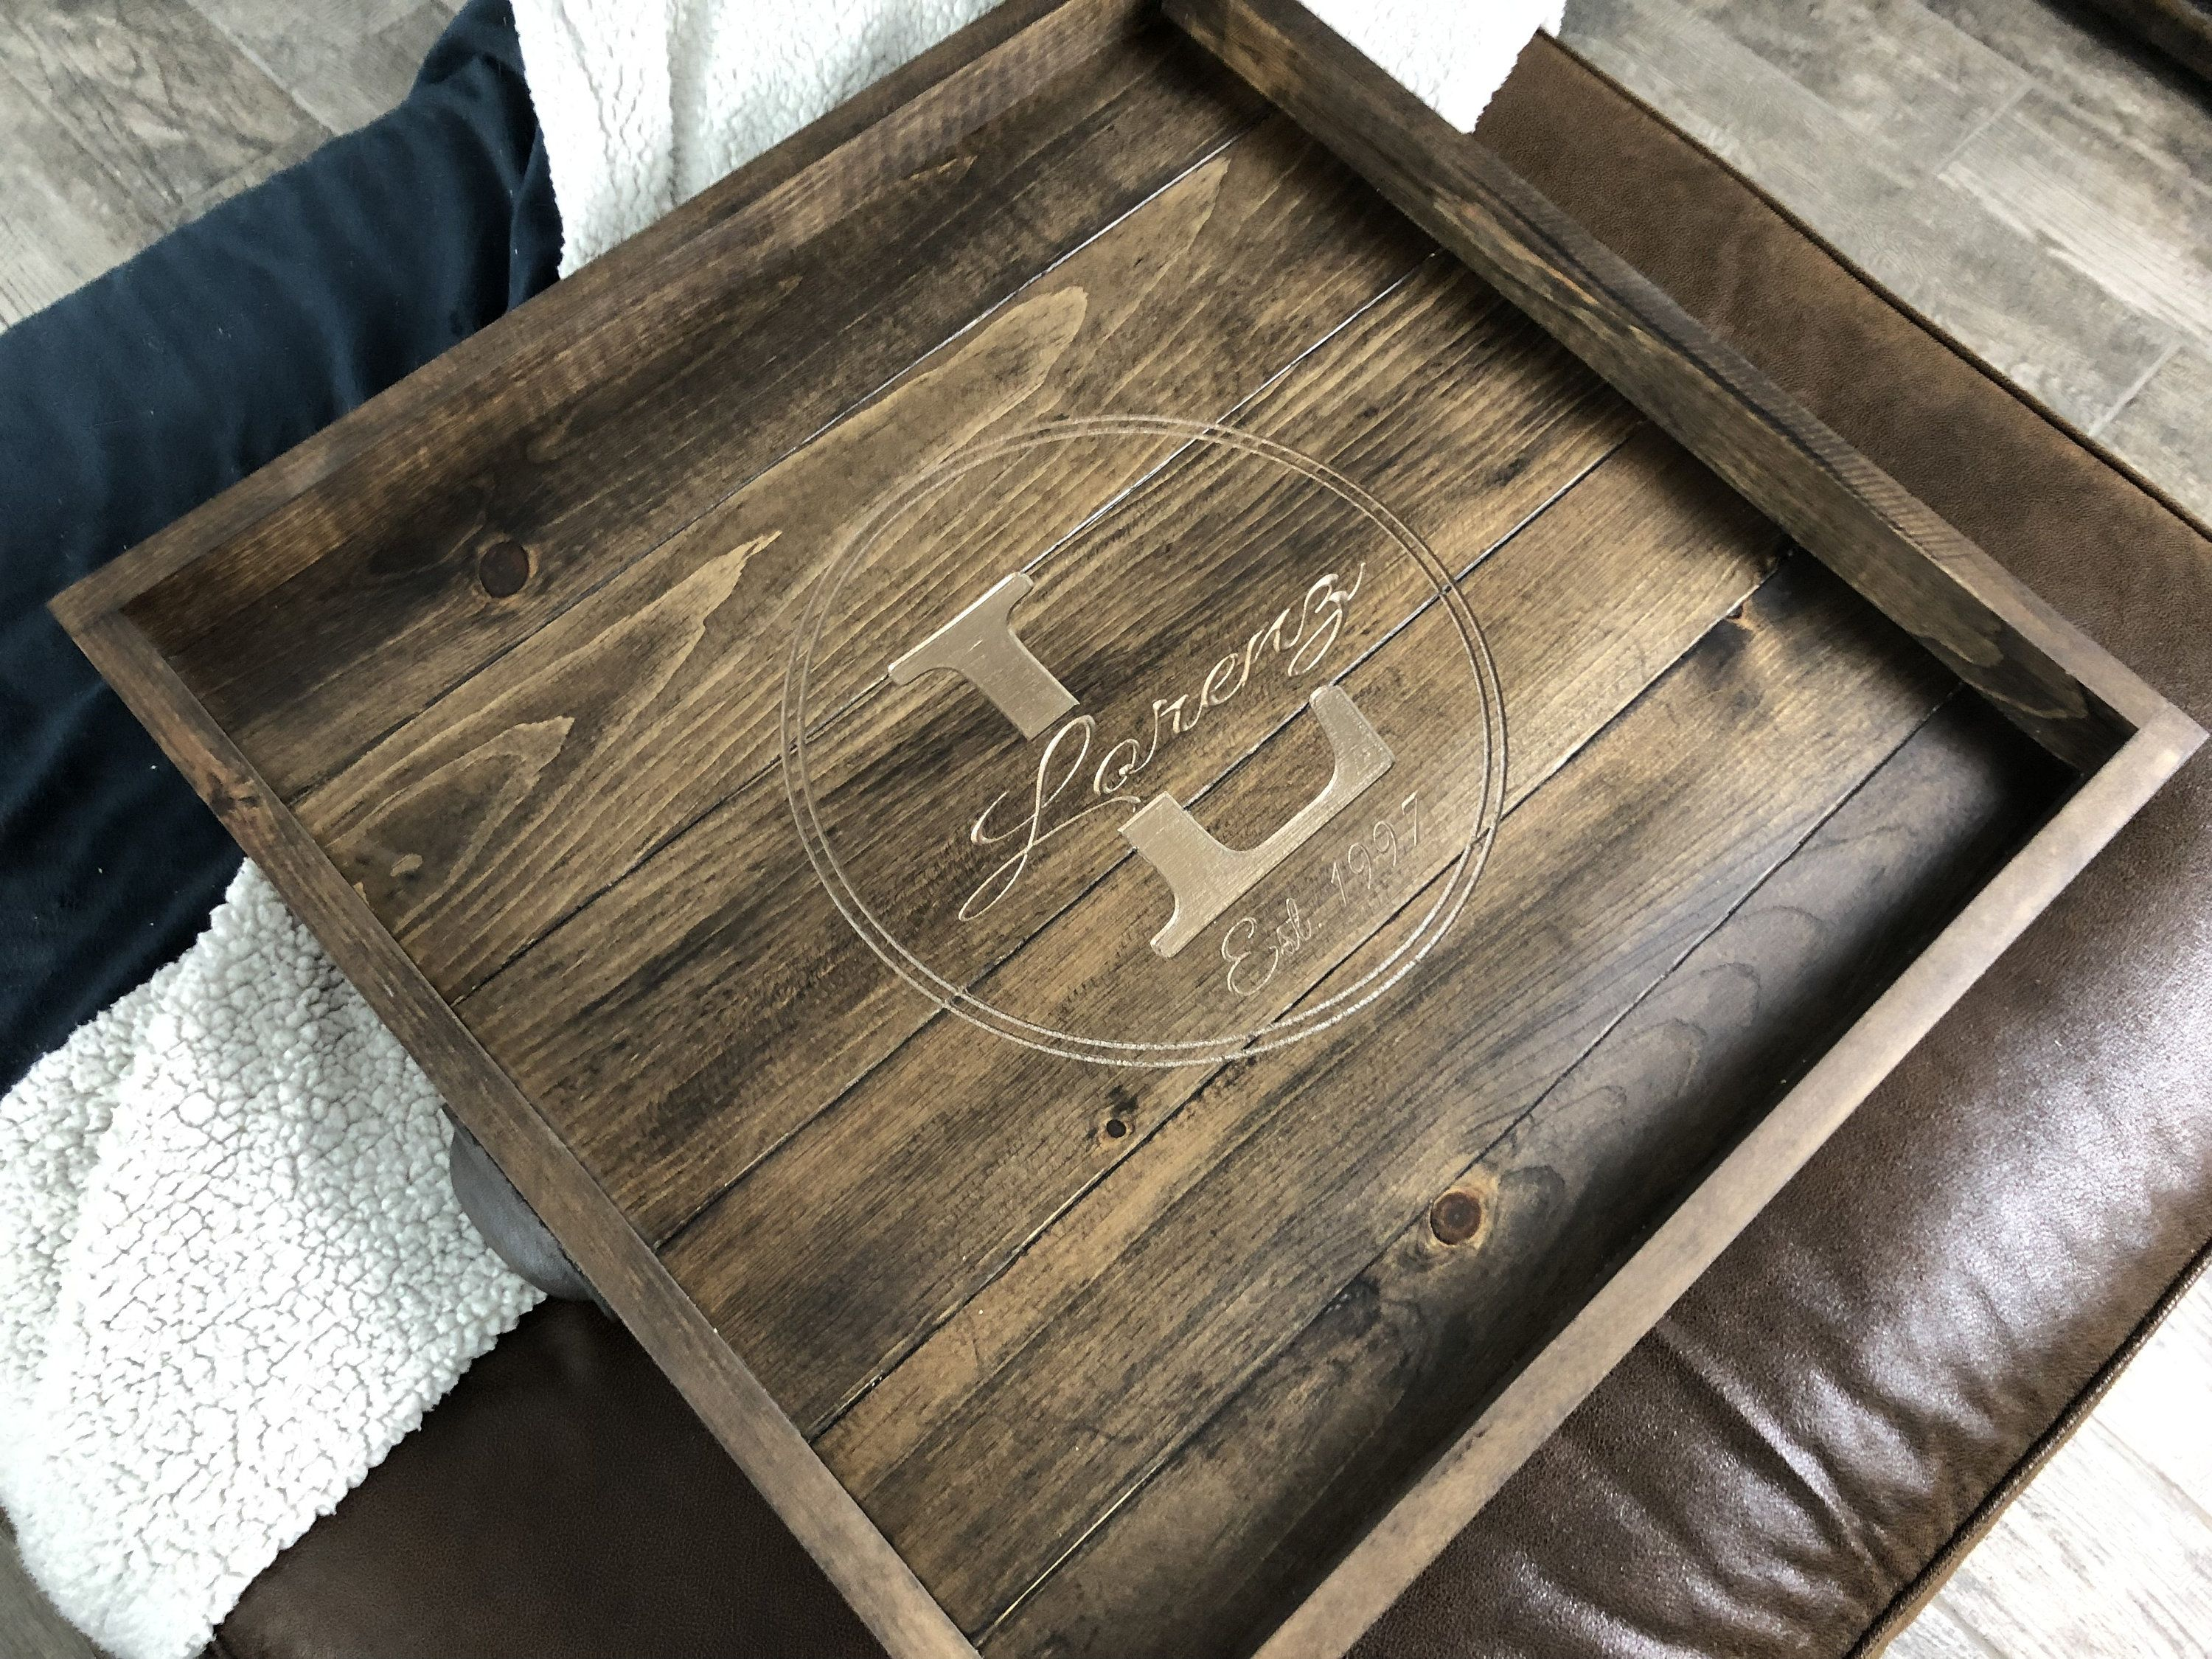 Custom Engraved Ottoman Tray Wooden Serving Tray Monogrammed Etsy Ottoman Tray Wooden Serving Trays Coffee Table Tray [ 2250 x 3000 Pixel ]